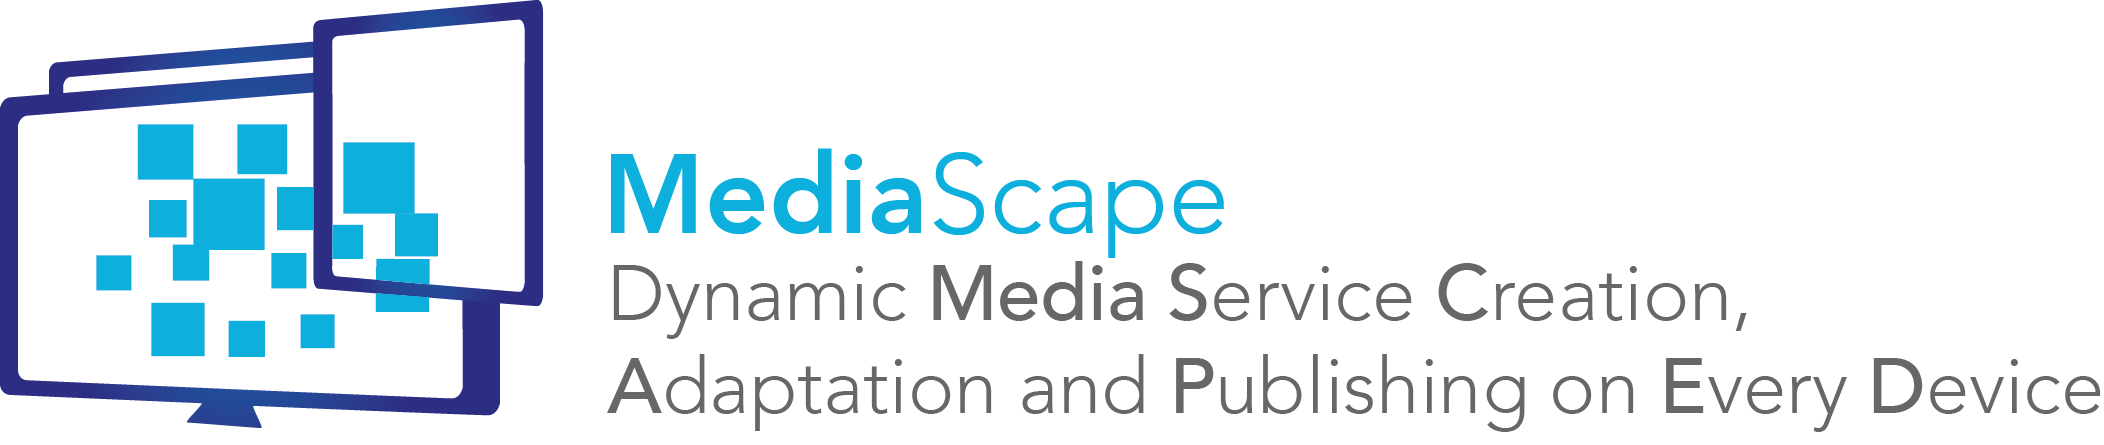 Mikel Zorrilla takes part in the WWW2015 Congress in Florence from 18th to 22nd of May to present MediaScape project.